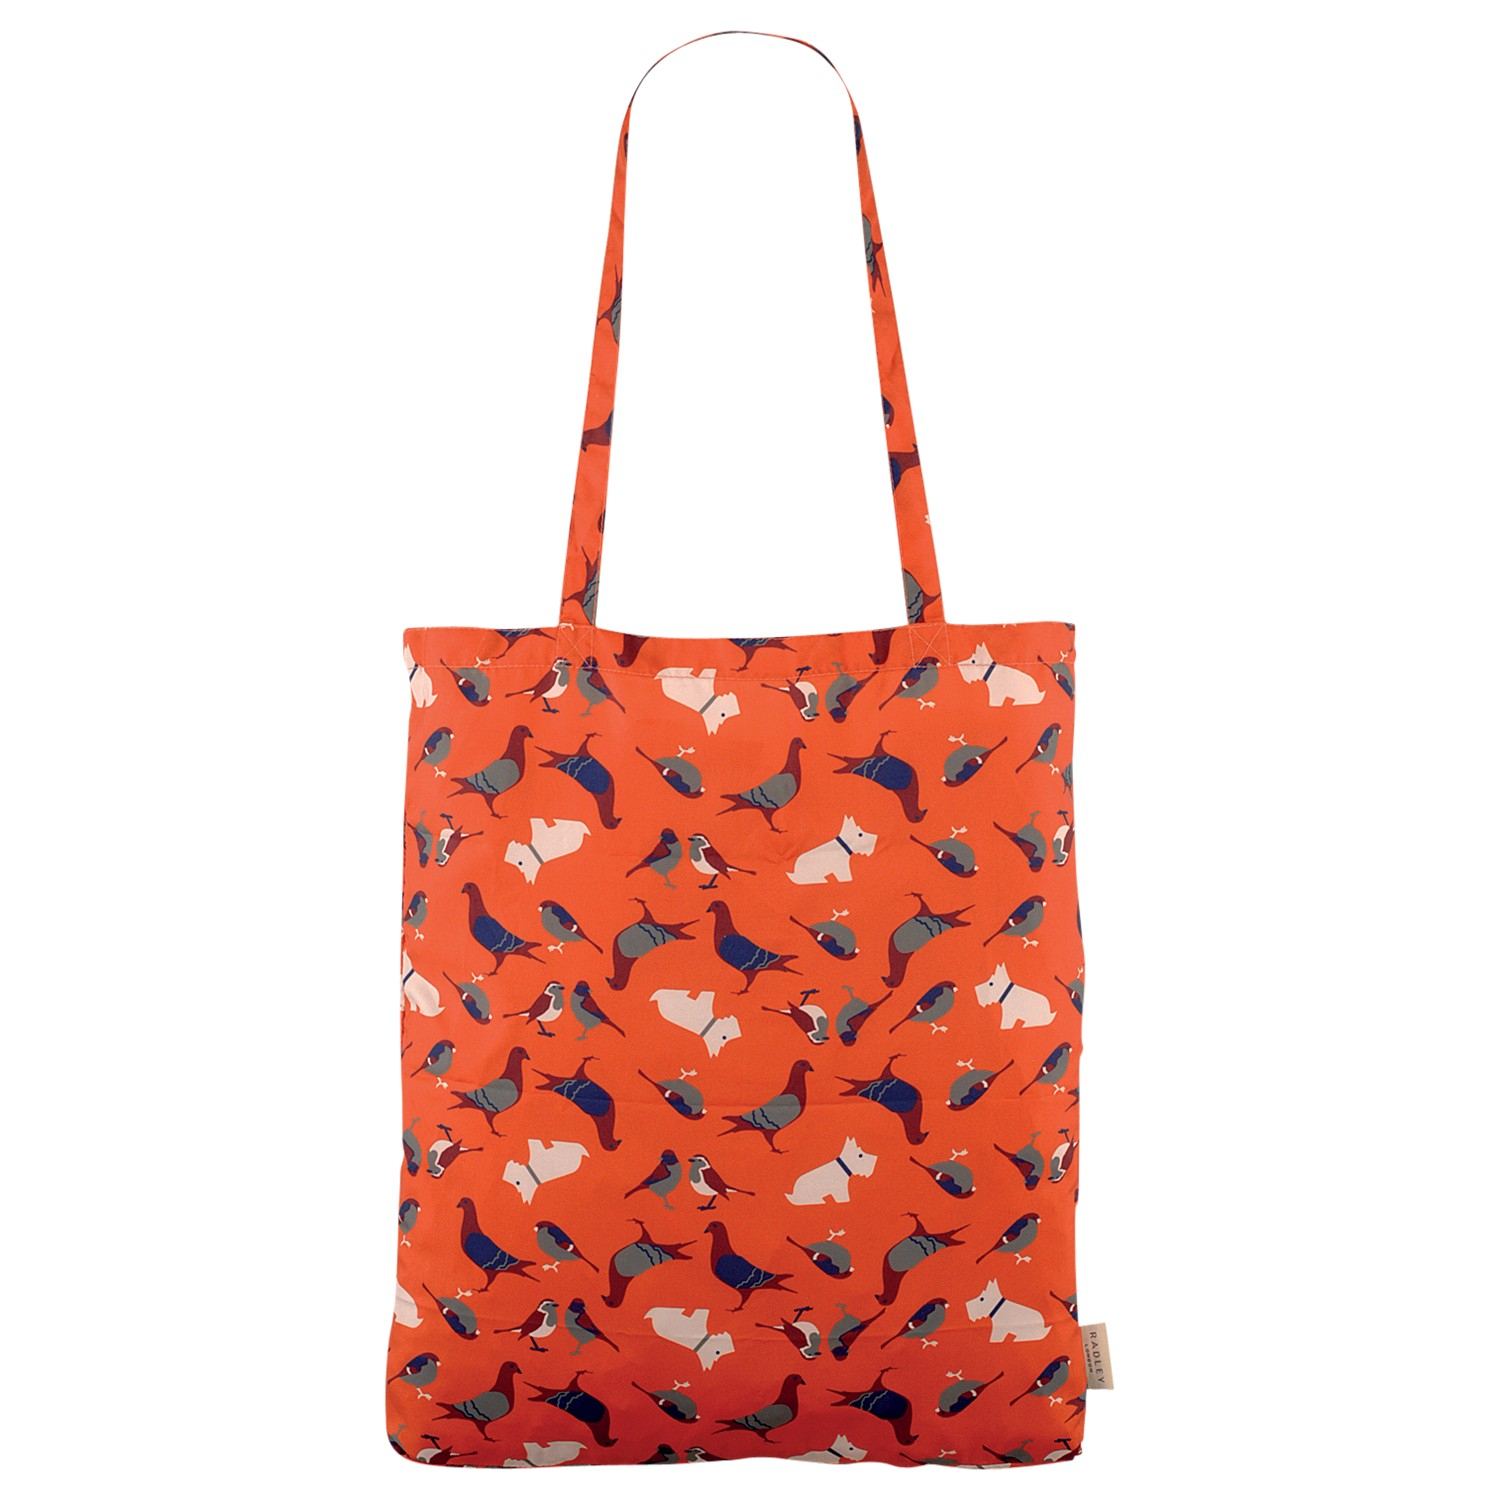 radley a little bird told me foldaway shopper bag in orange lyst gallery